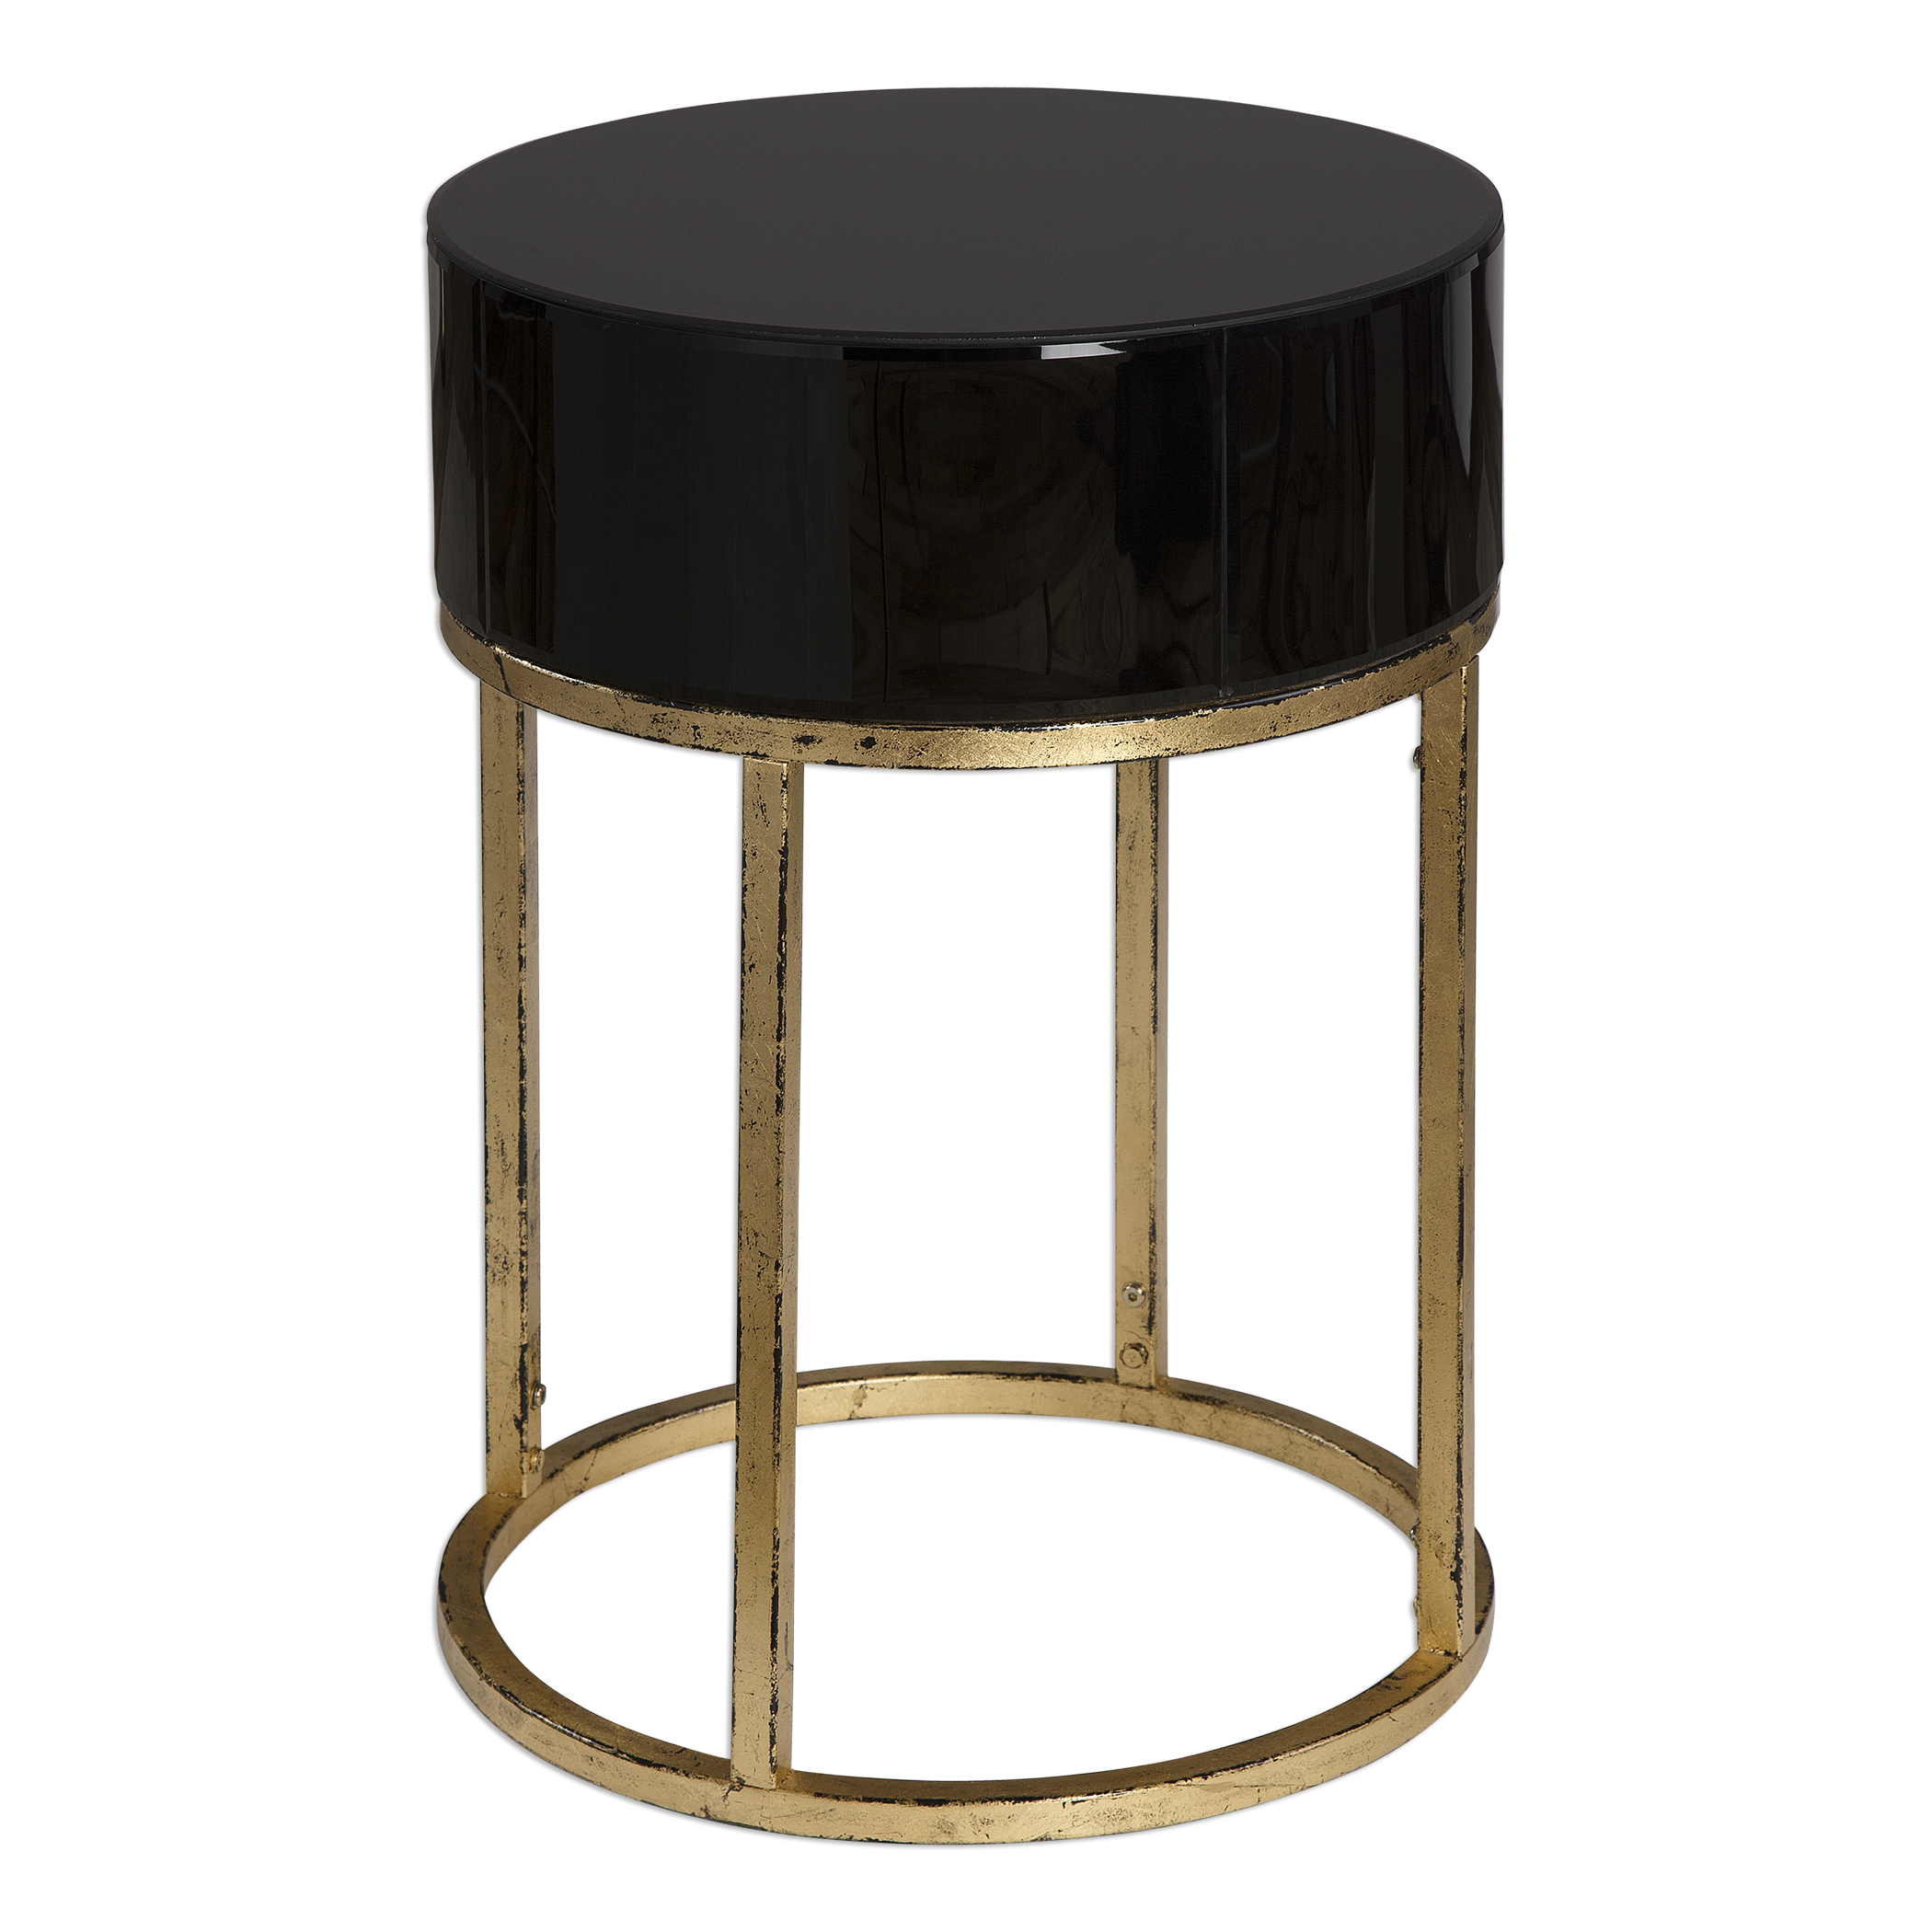 Uttermost Accent Furniture Myles Curved Black Accent Table - Item Number: 24642